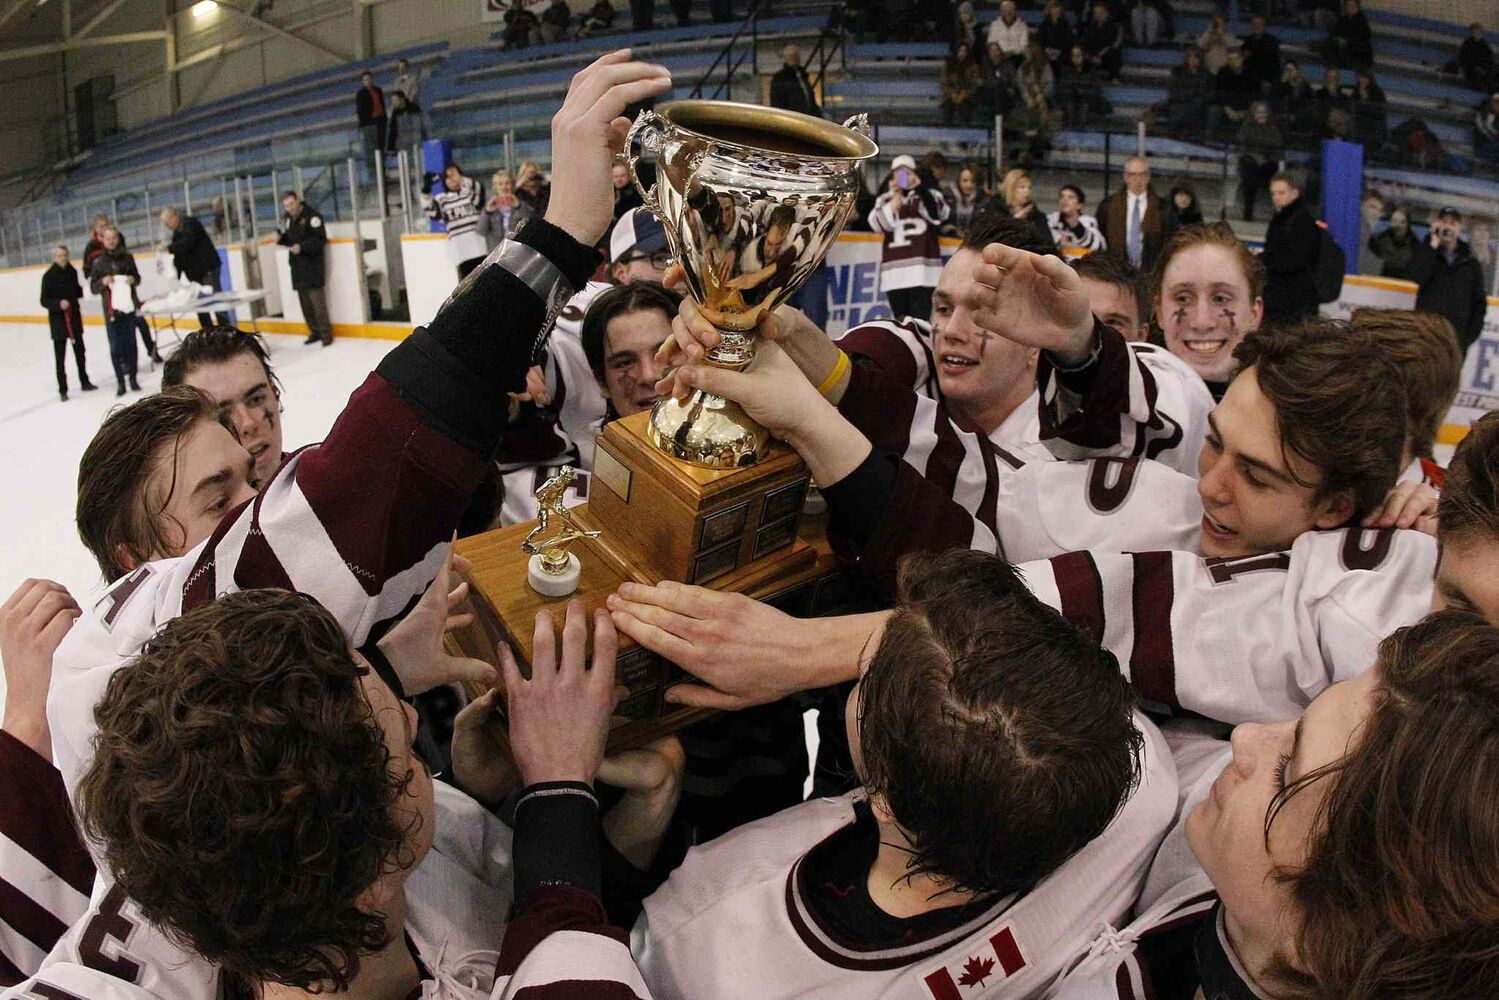 St. Paul's Crusaders players celebrate a 4-1 win over the River East Kodiaks in the AAAA Provincial High School Hockey Championship at St. James Civic Centre Monday night. (JOHN WOODS / WINNIPEG FREE PRESS)